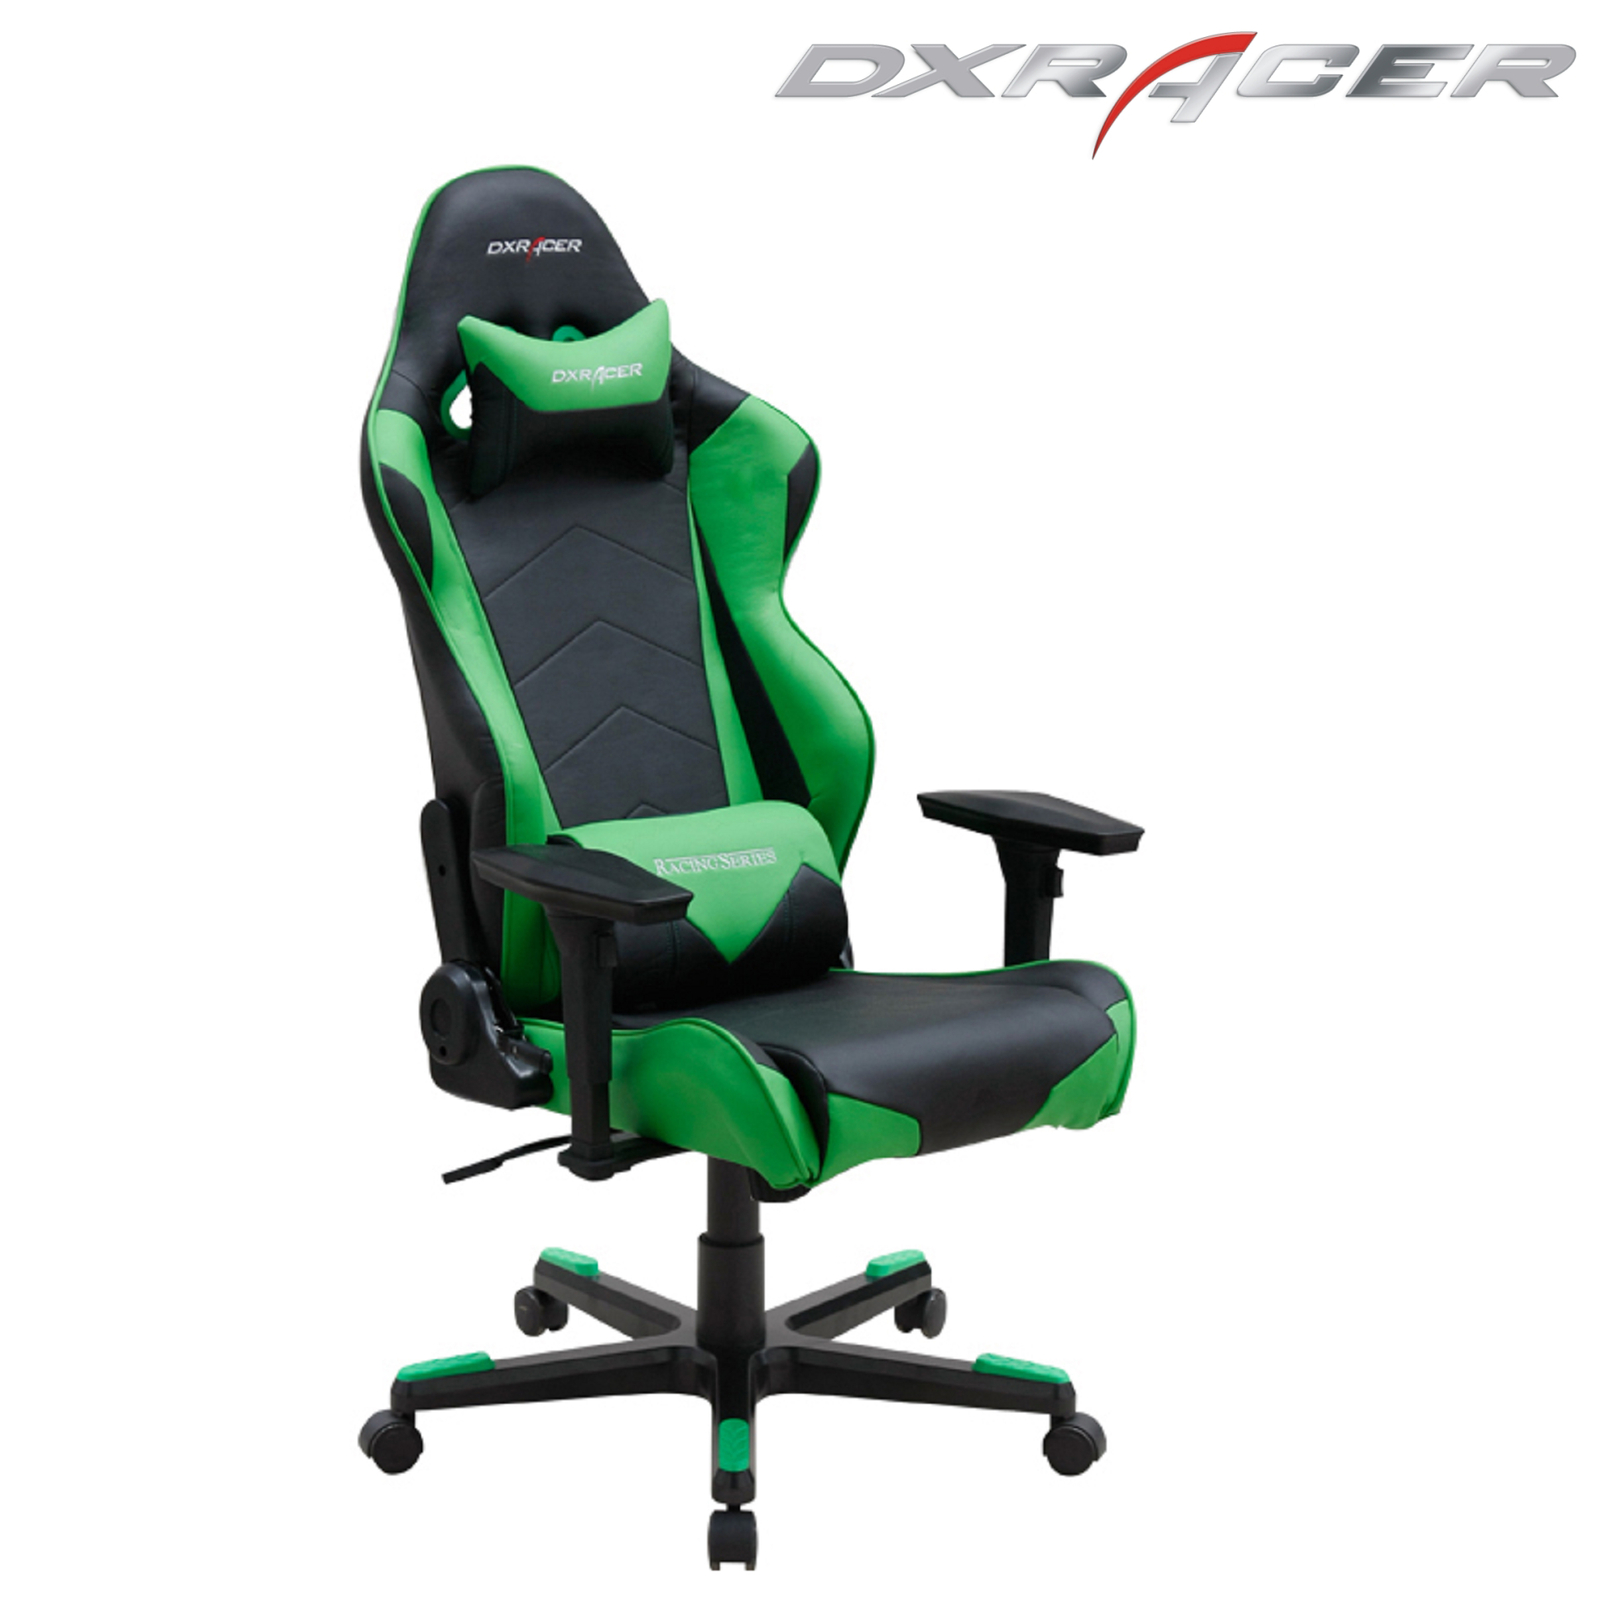 dxracer gaming chairs computer chair rf0ne office esport